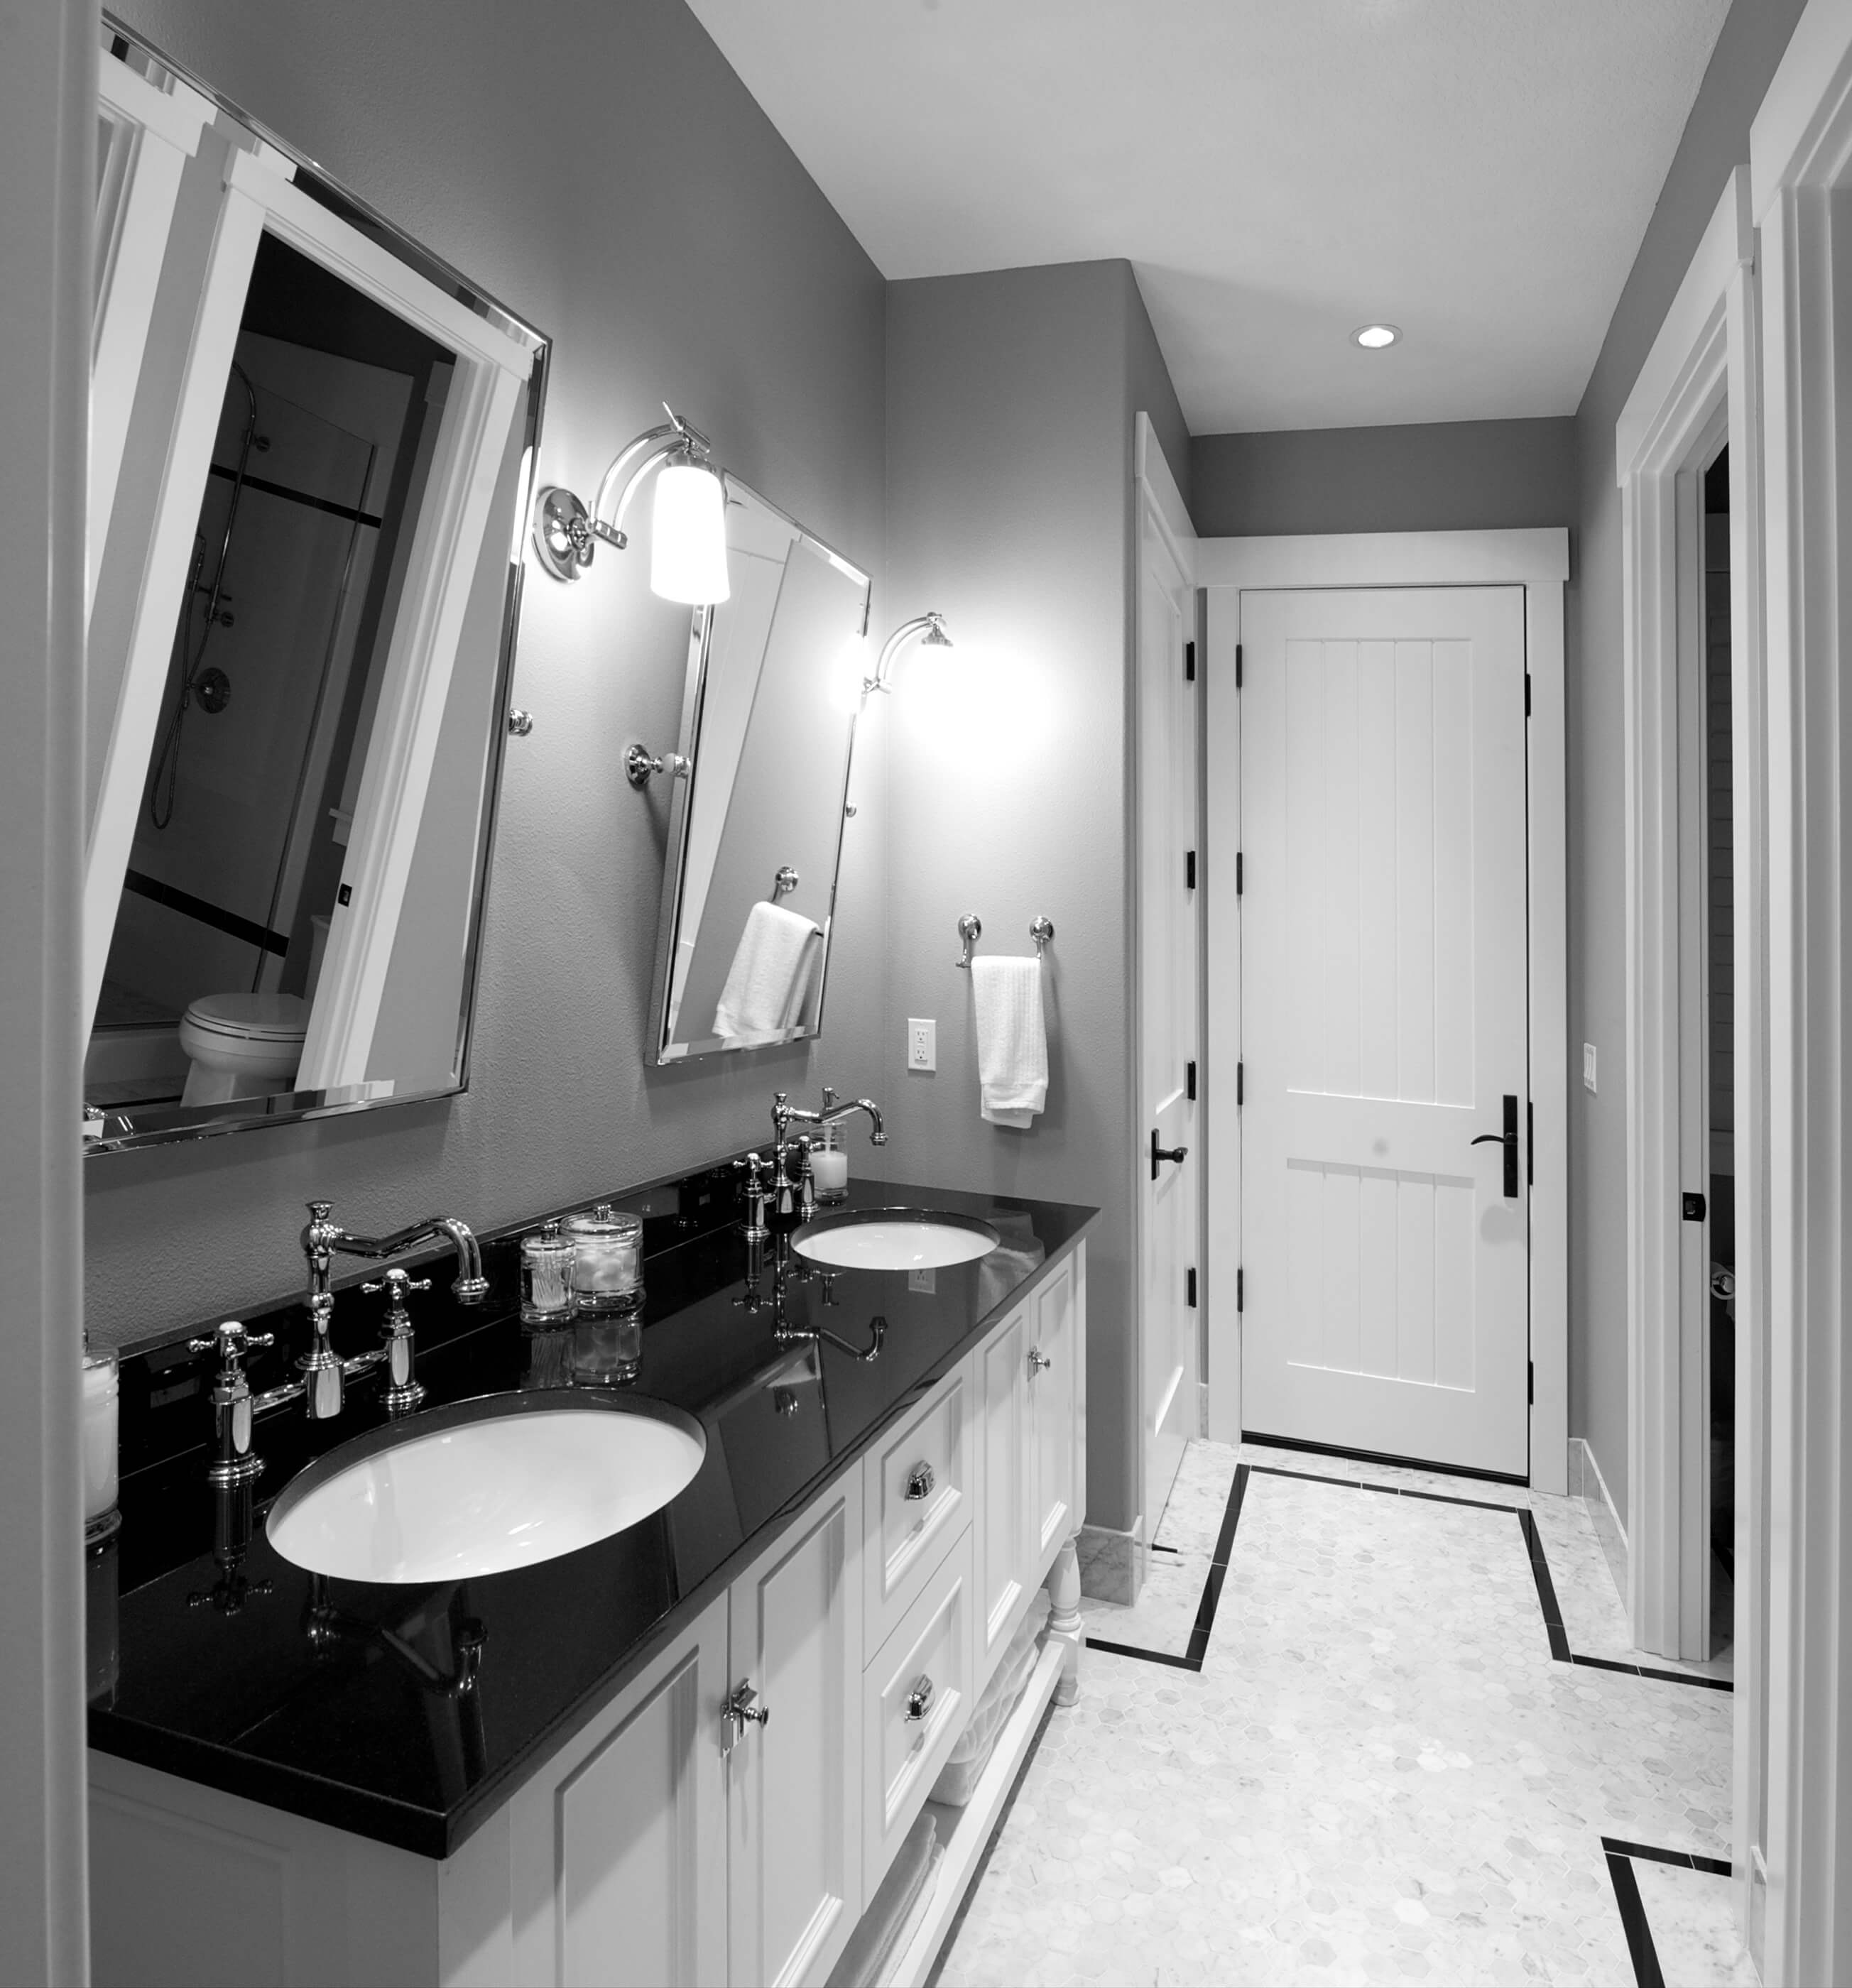 Here's a wide angle of another bathroom in black and white. Chromed tilt-angle mirrors hang over black countertops with traditional basin sinks; patterned tile flooring mirrors the color scheme.